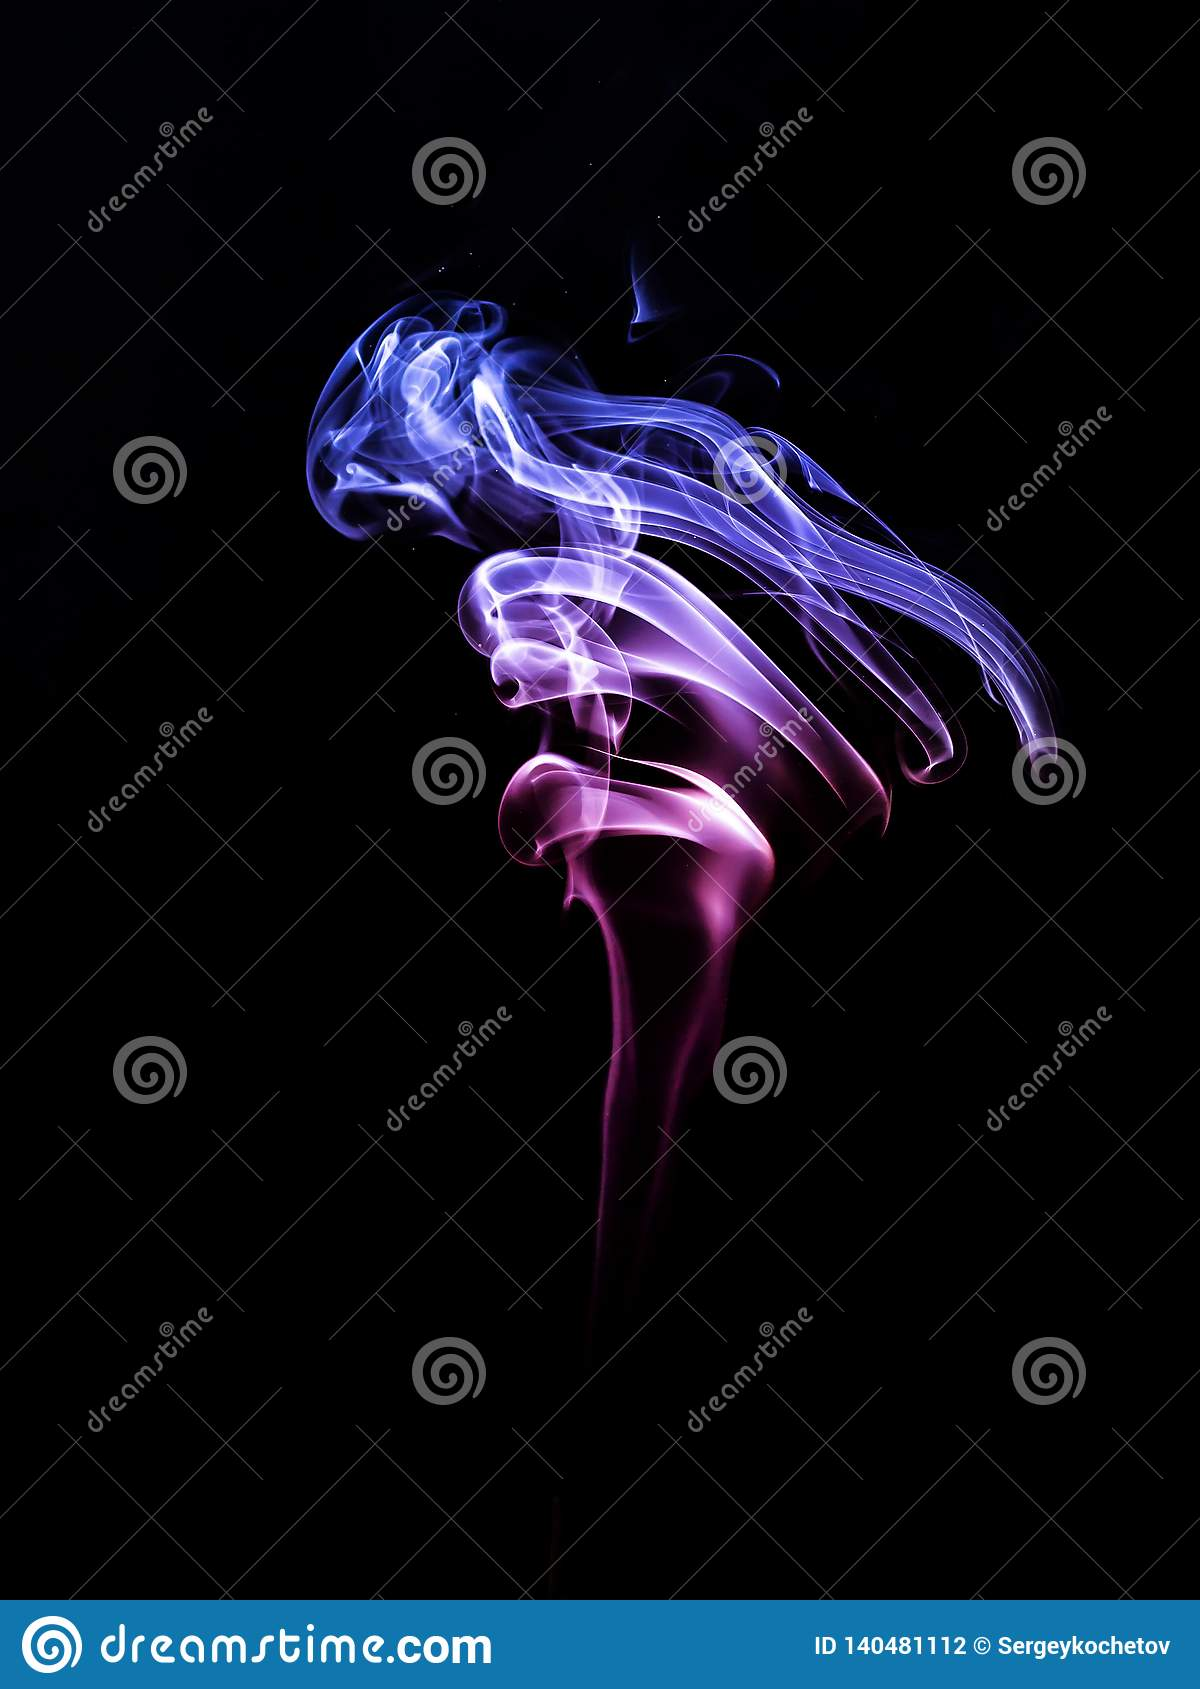 Smoke red blue on a black background. Abstract background.